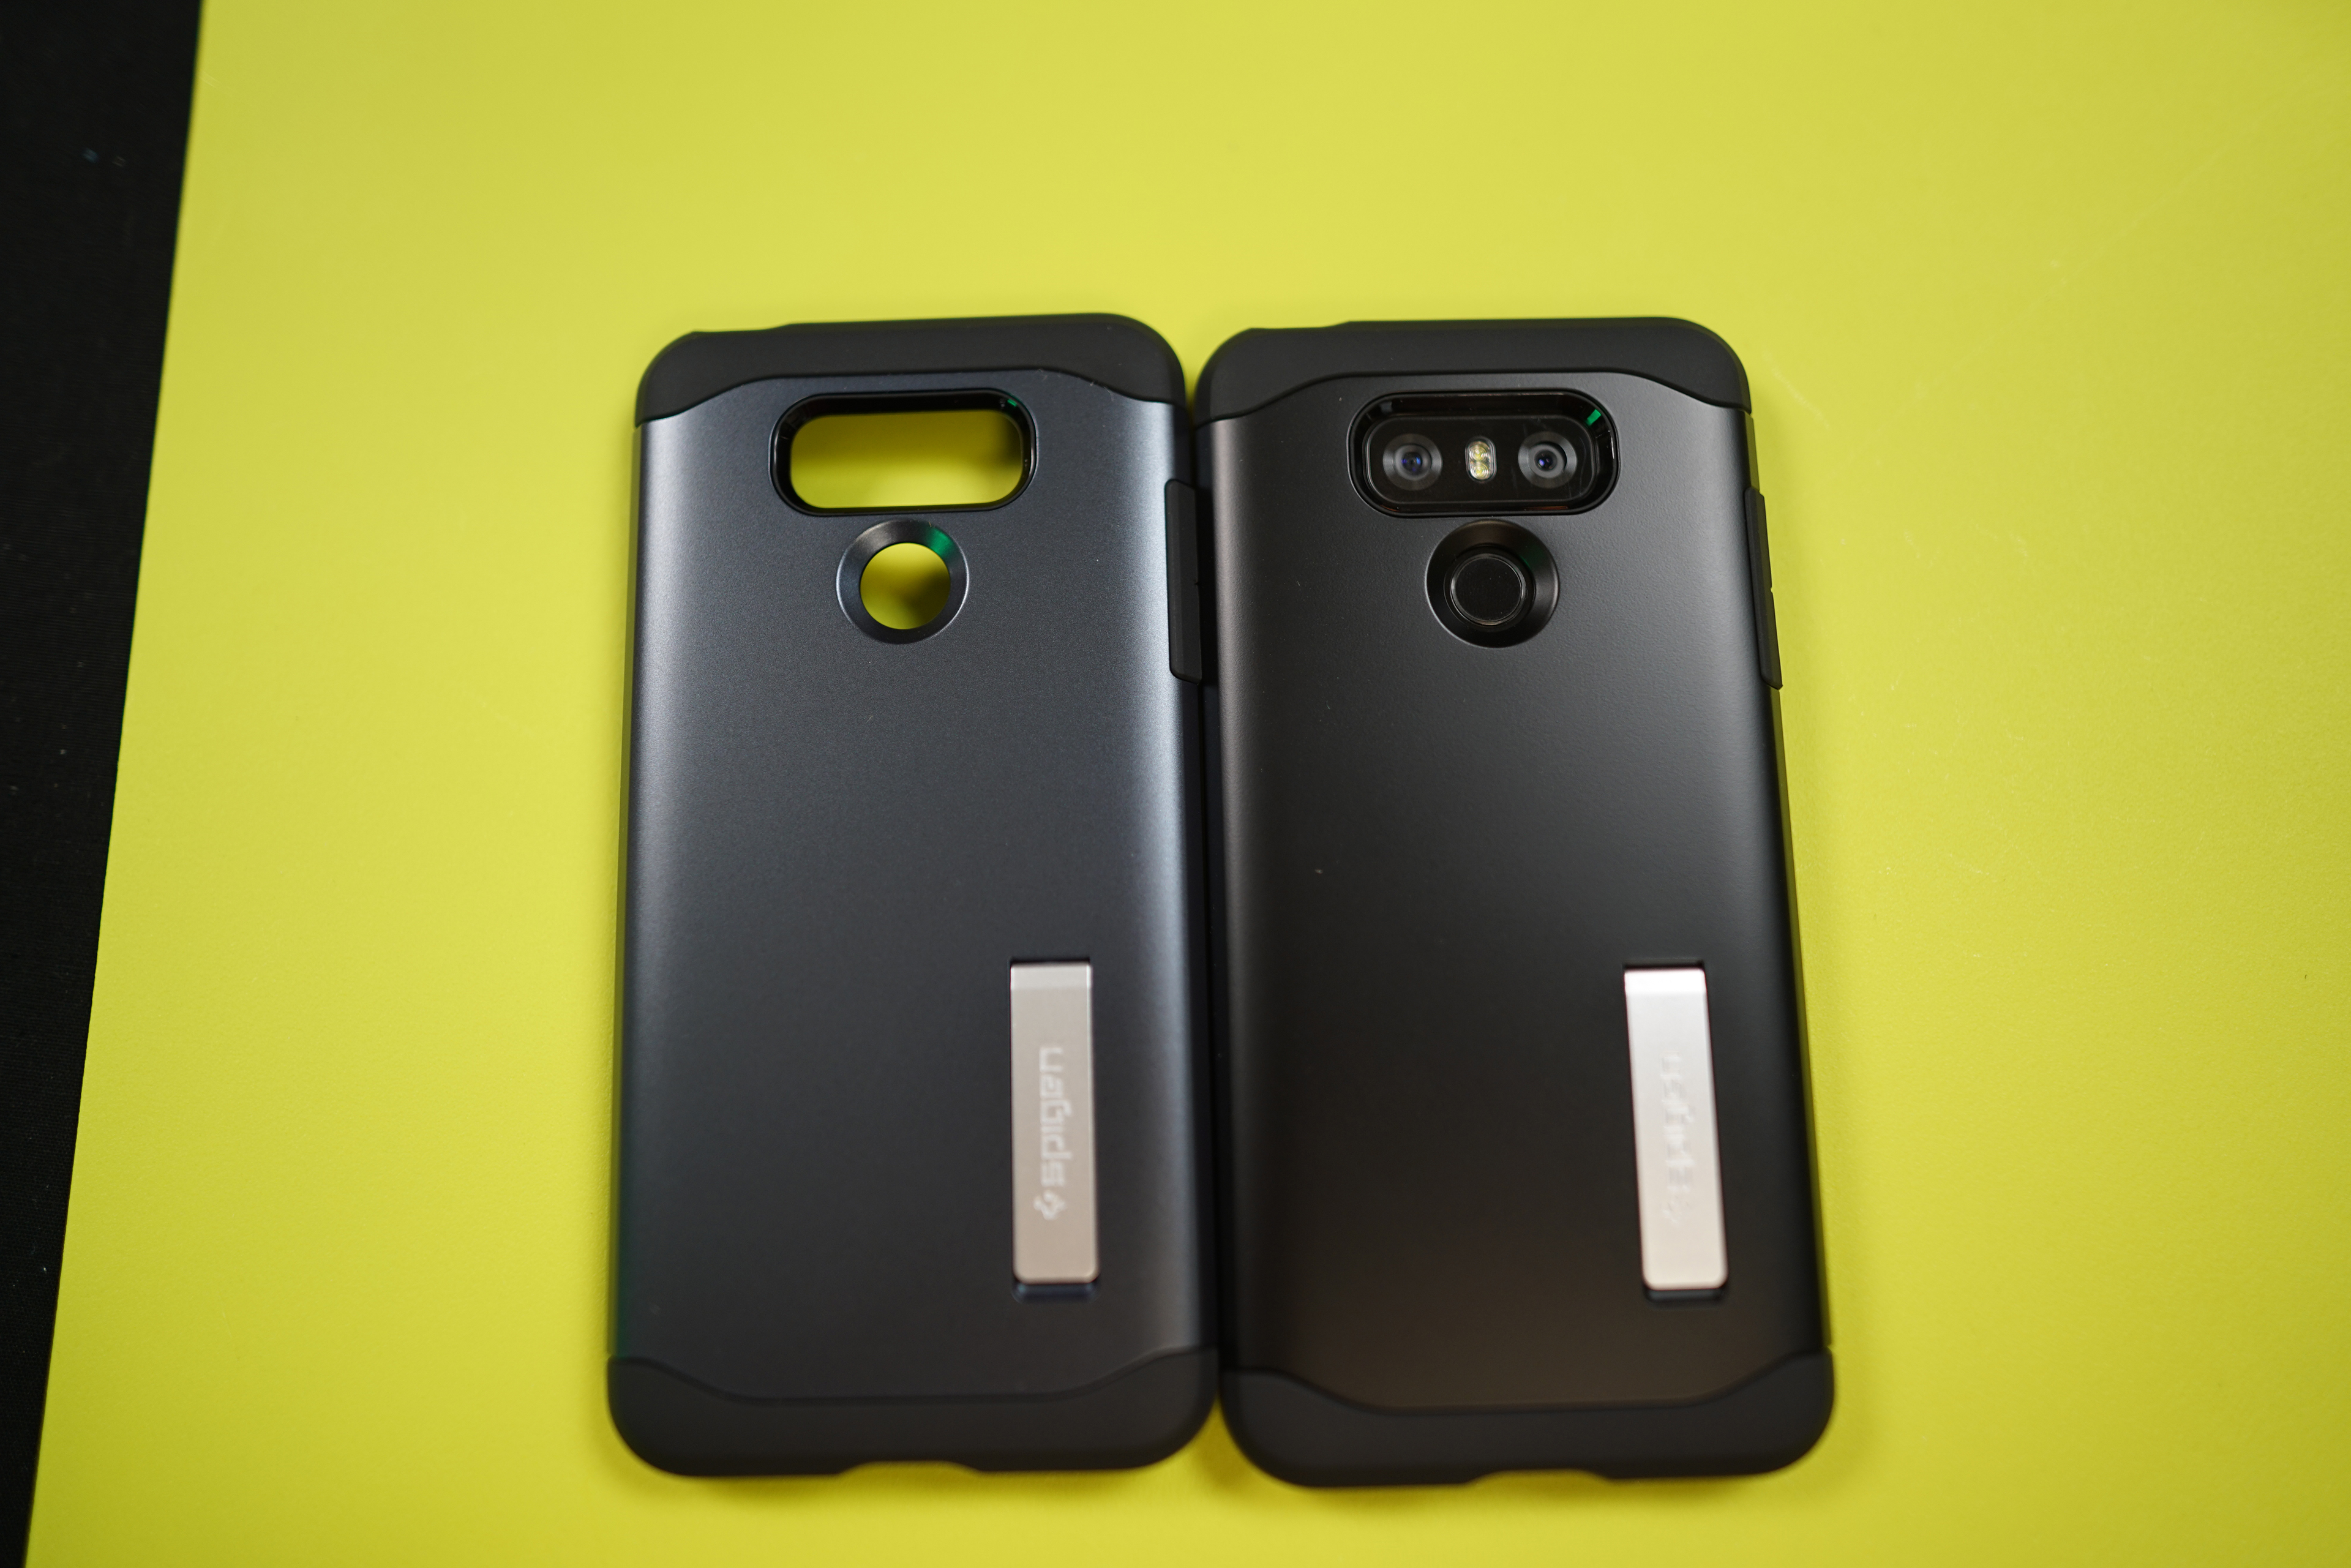 ... Fans List for free help from Max and discounts on Android accessories